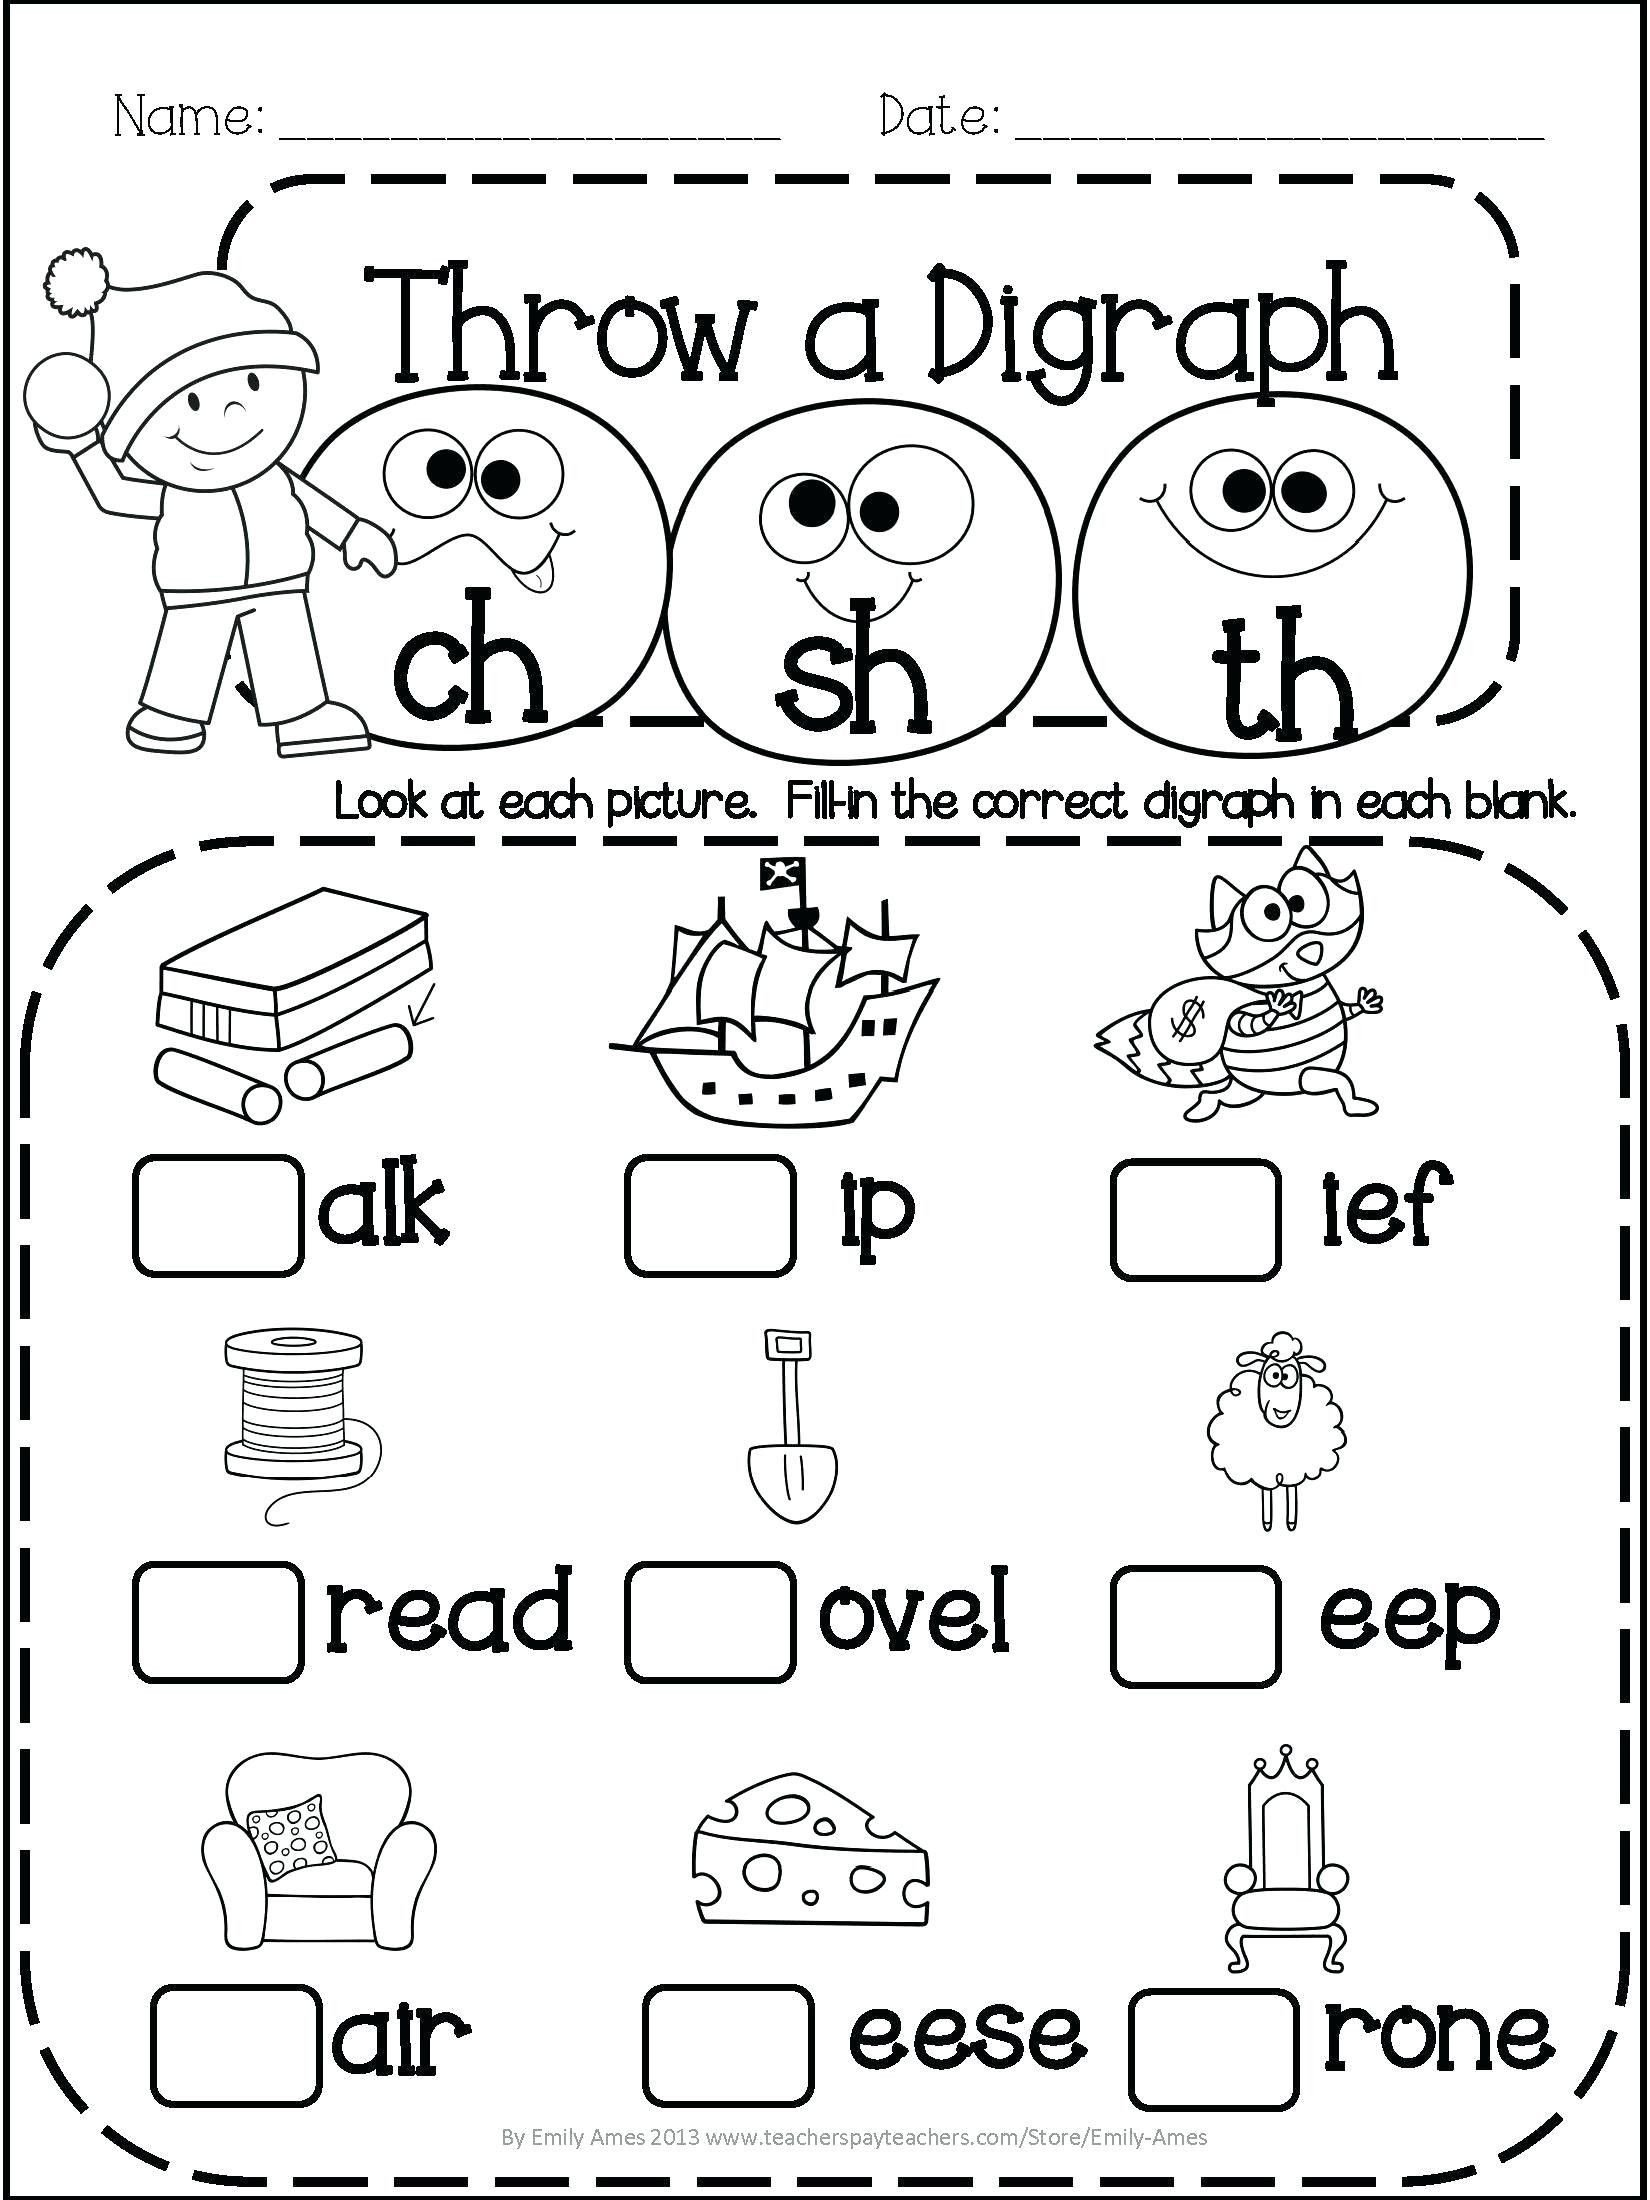 Word Problems for Kindergarten Worksheets Worksheets Free Math Worksheets Third Grade Addition Word